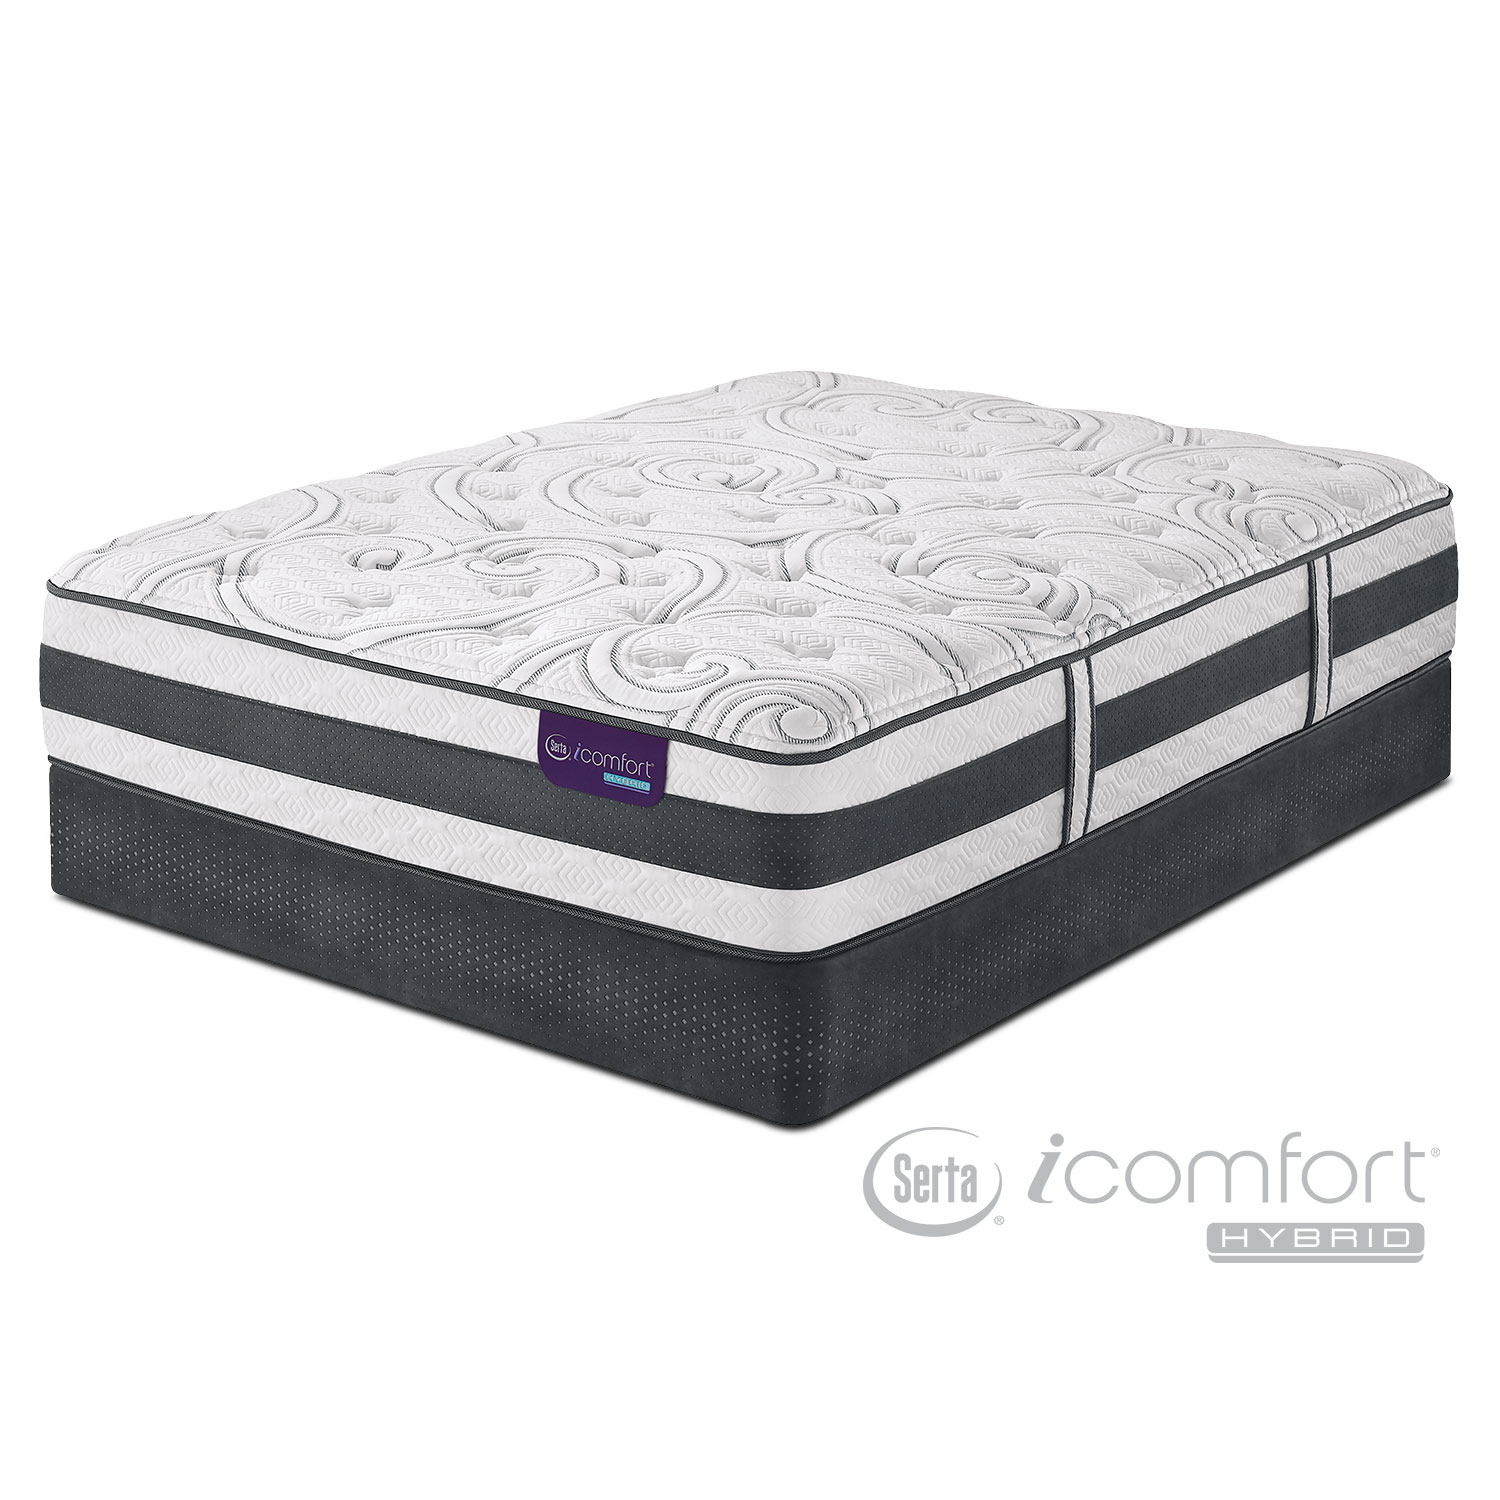 Recognition Plush California King Mattress and Split Foundation Set